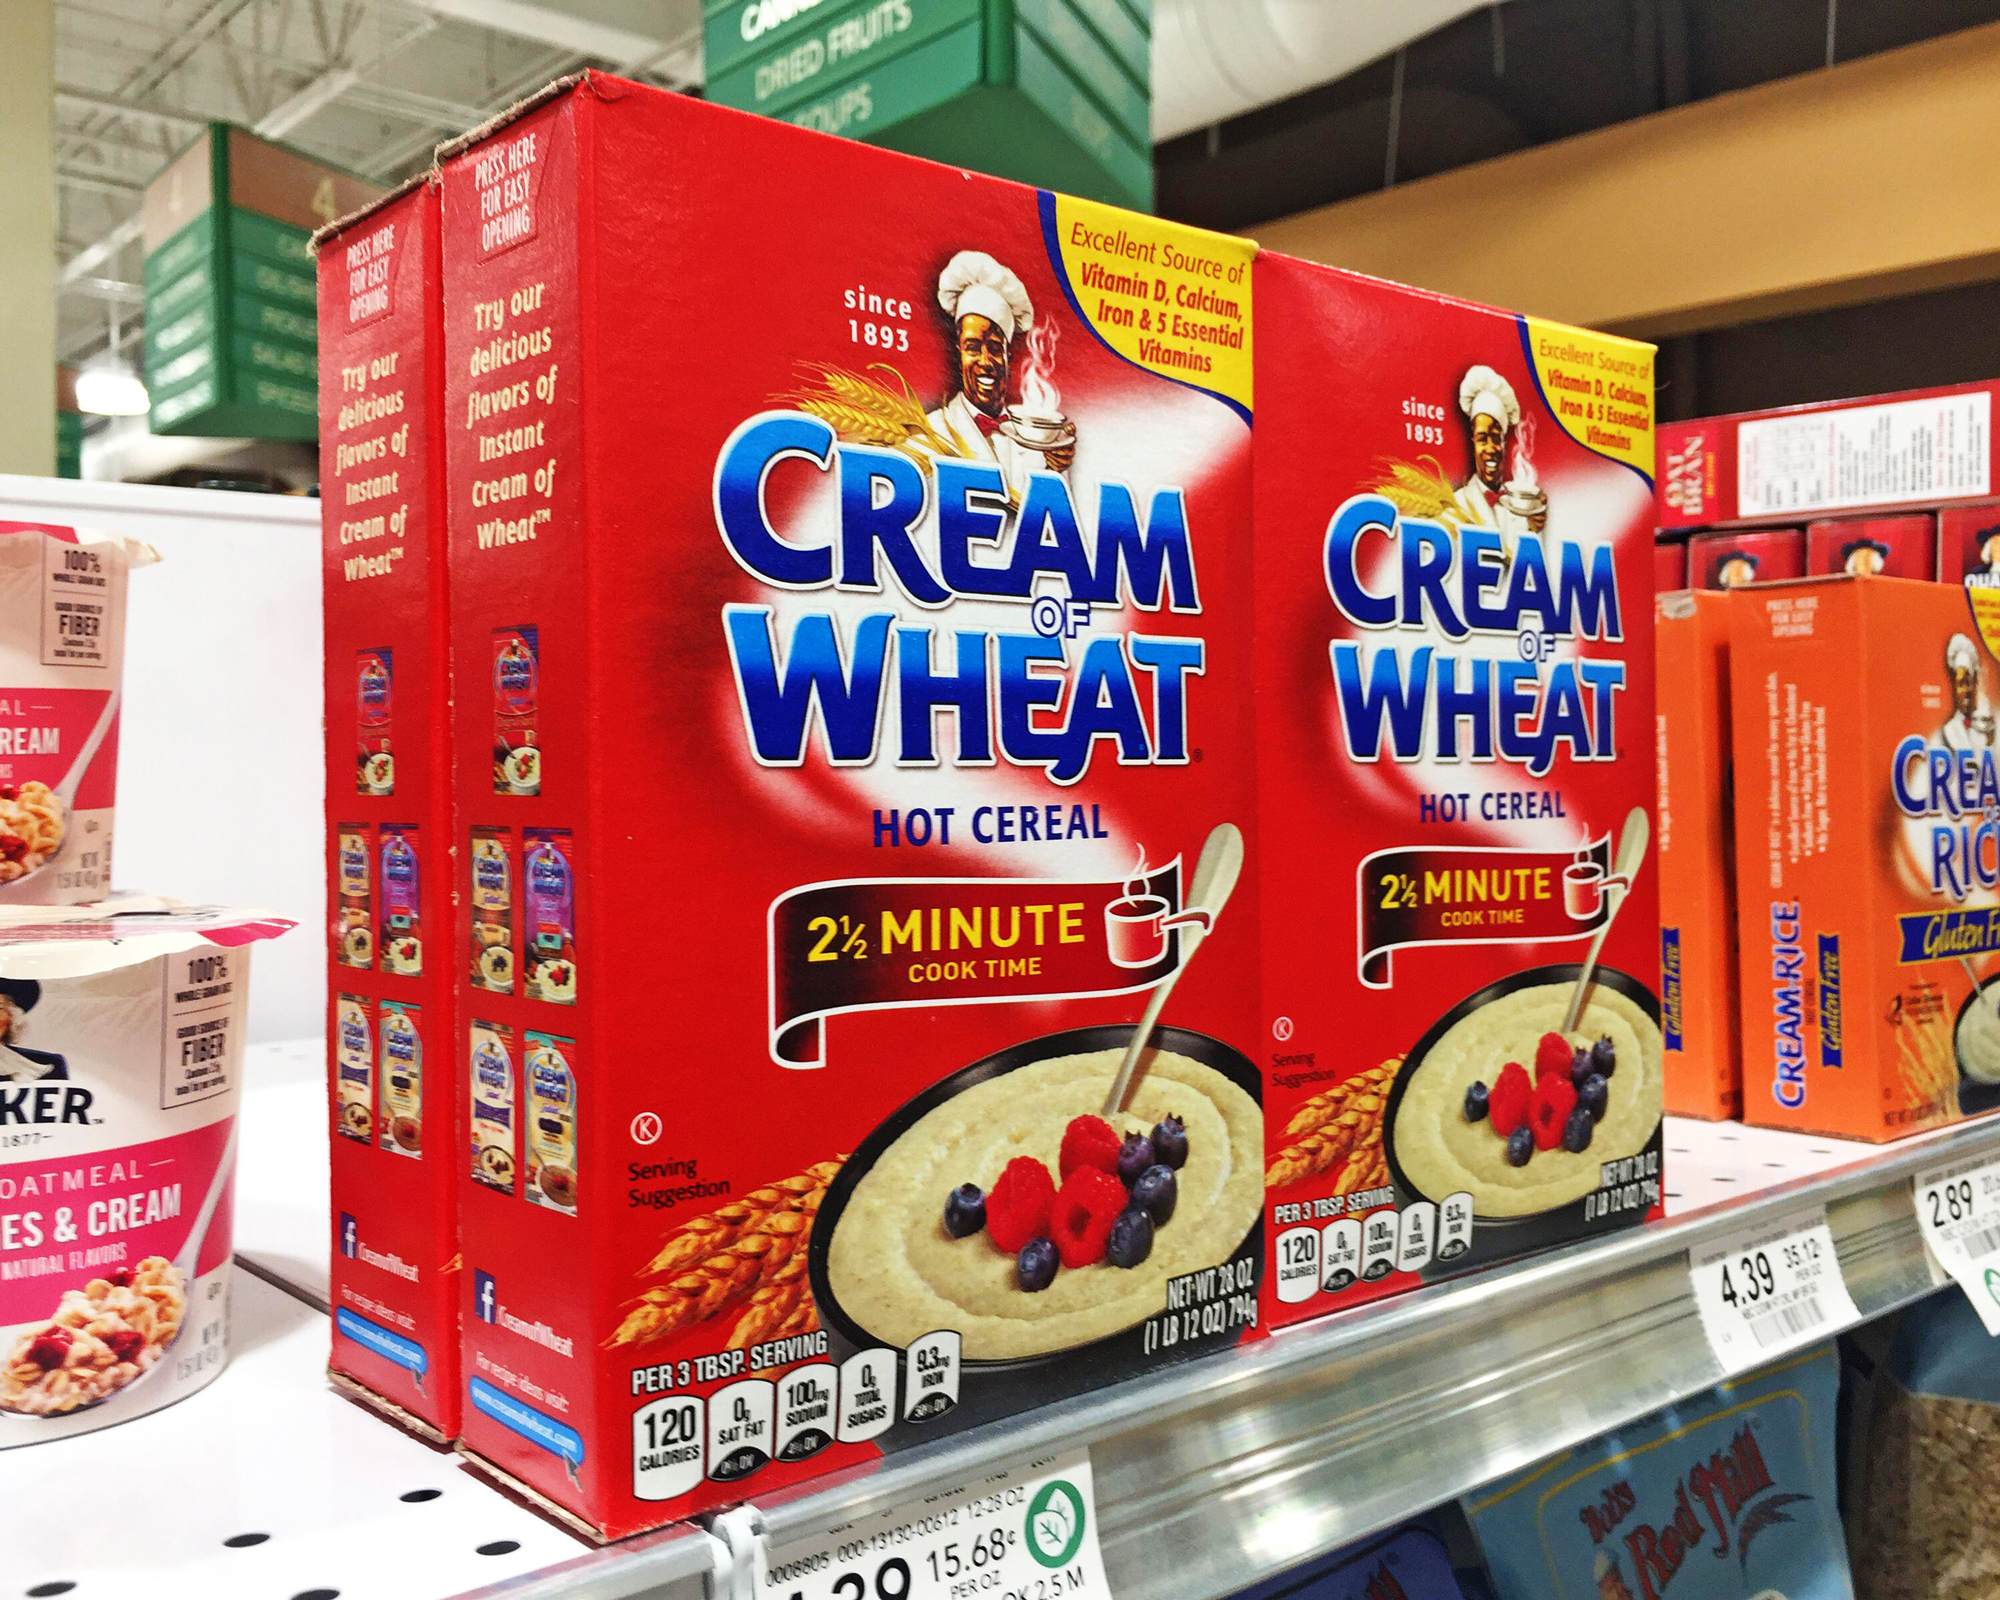 Cream of wheat boxes